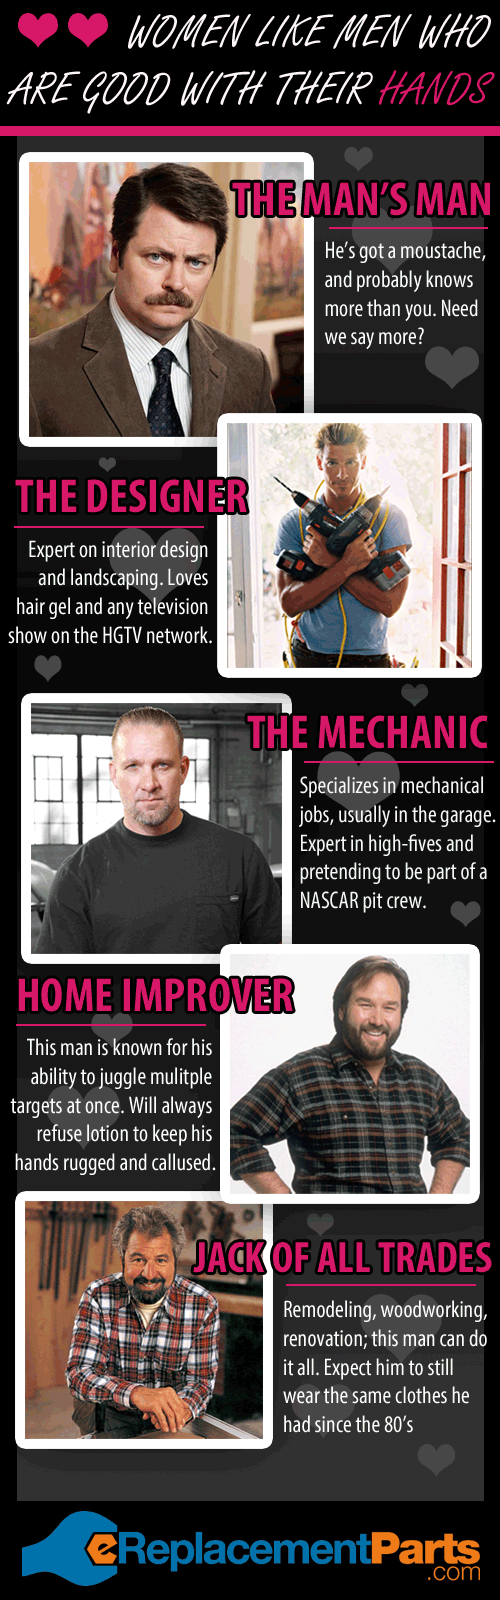 handy man,infographic,women